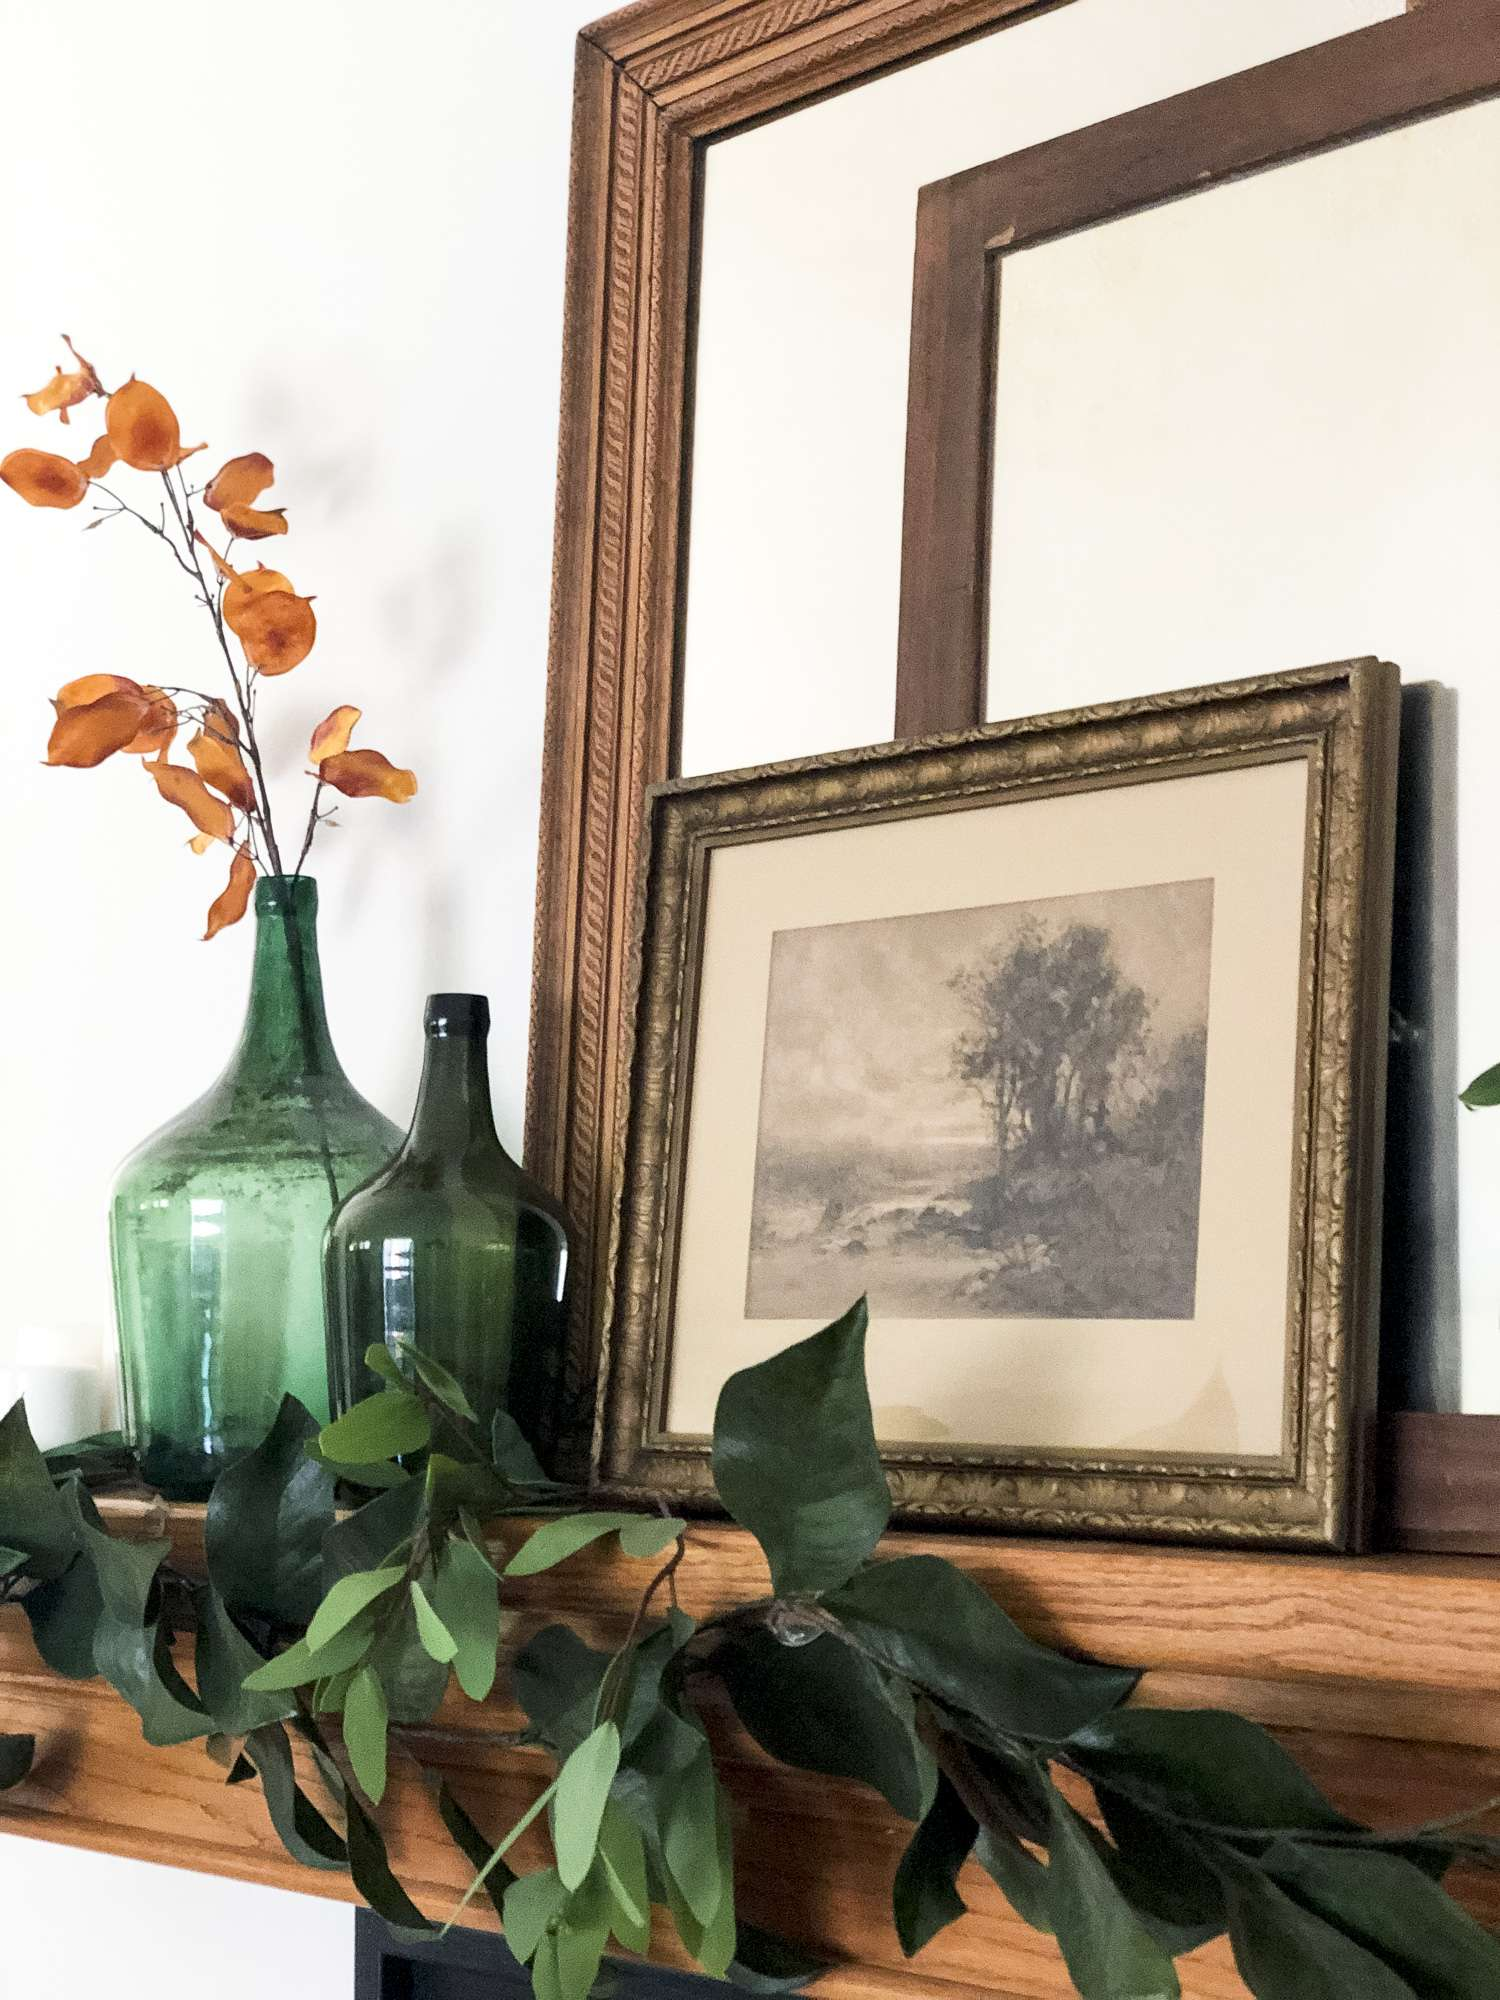 Green demijohn and vintage art pieces on a mantel